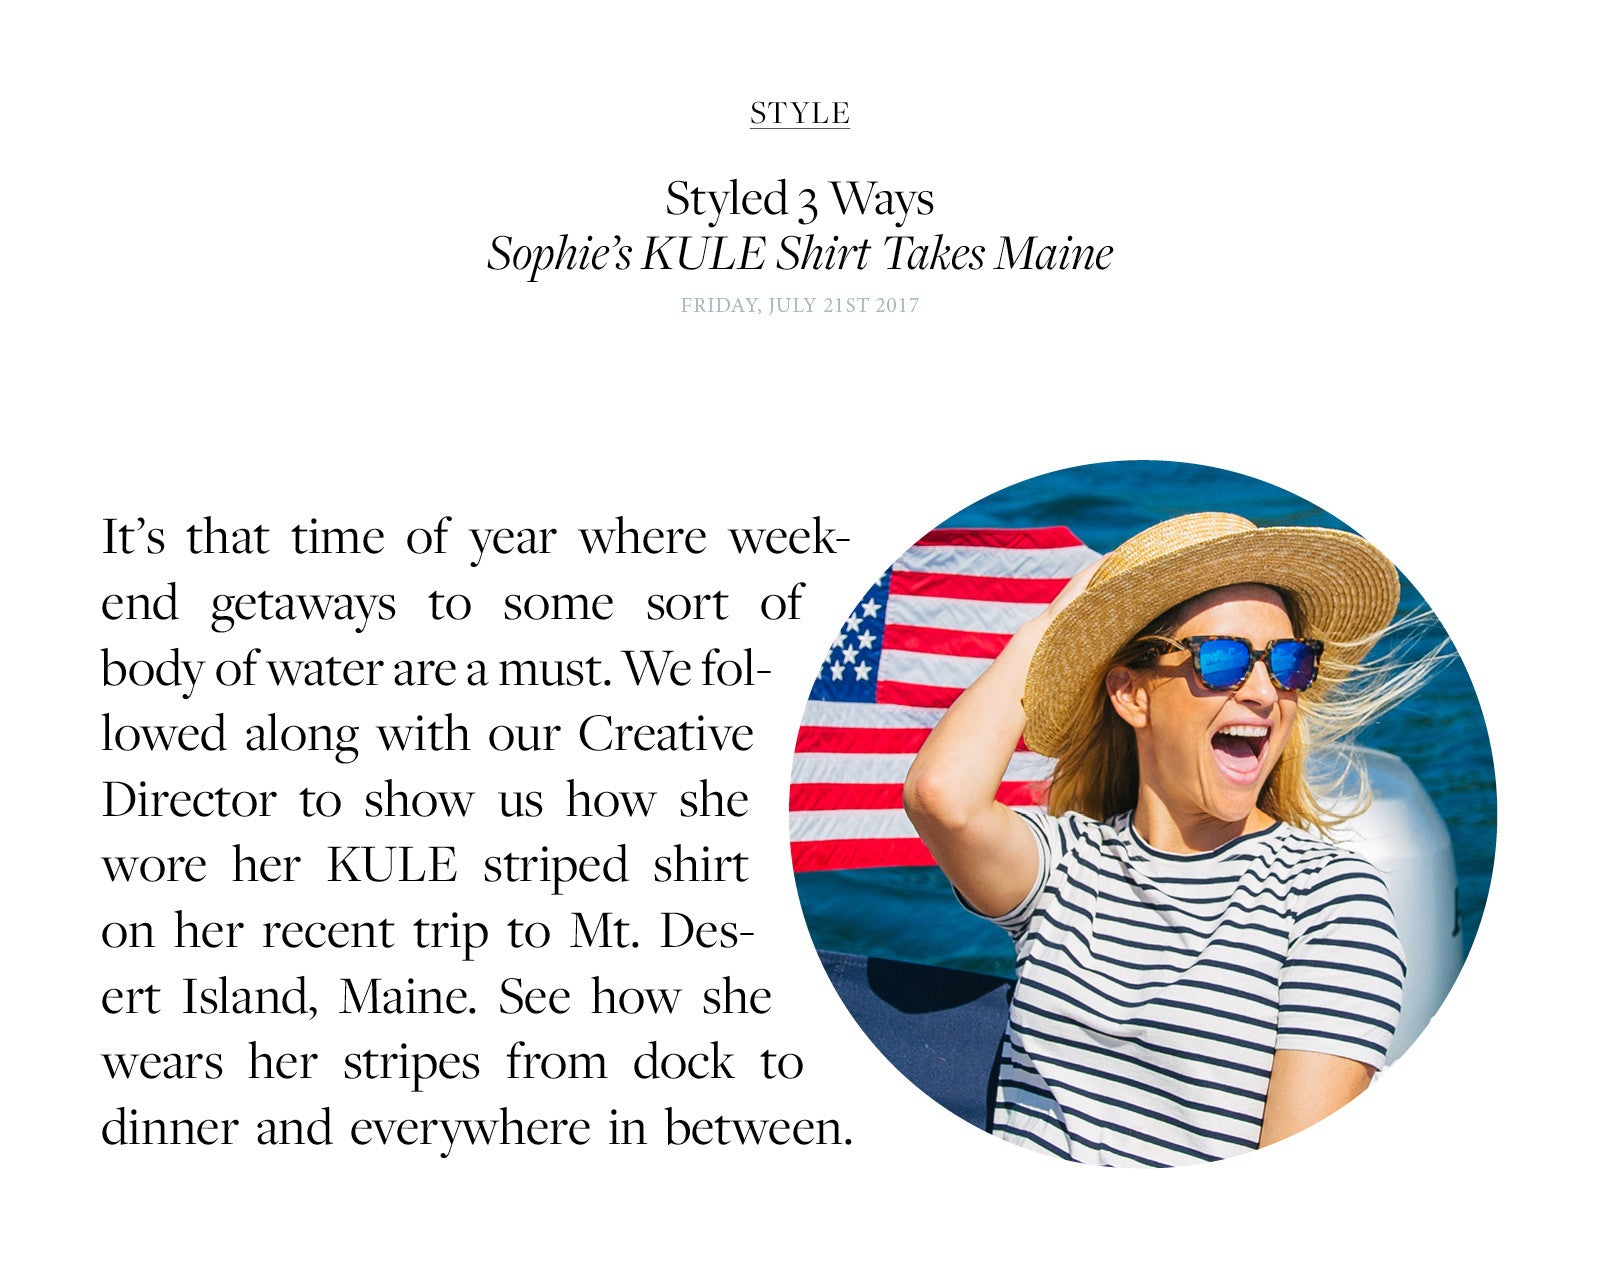 It's that time of year where weekend getaways to some sort of body of water are a must. We followed along with our Creative Director to show us how she wore her KULE striped shirt on her recent trip to Mt. Desert Island, Maine. See how she wears her stripes from dock to dinner and everywhere in between.